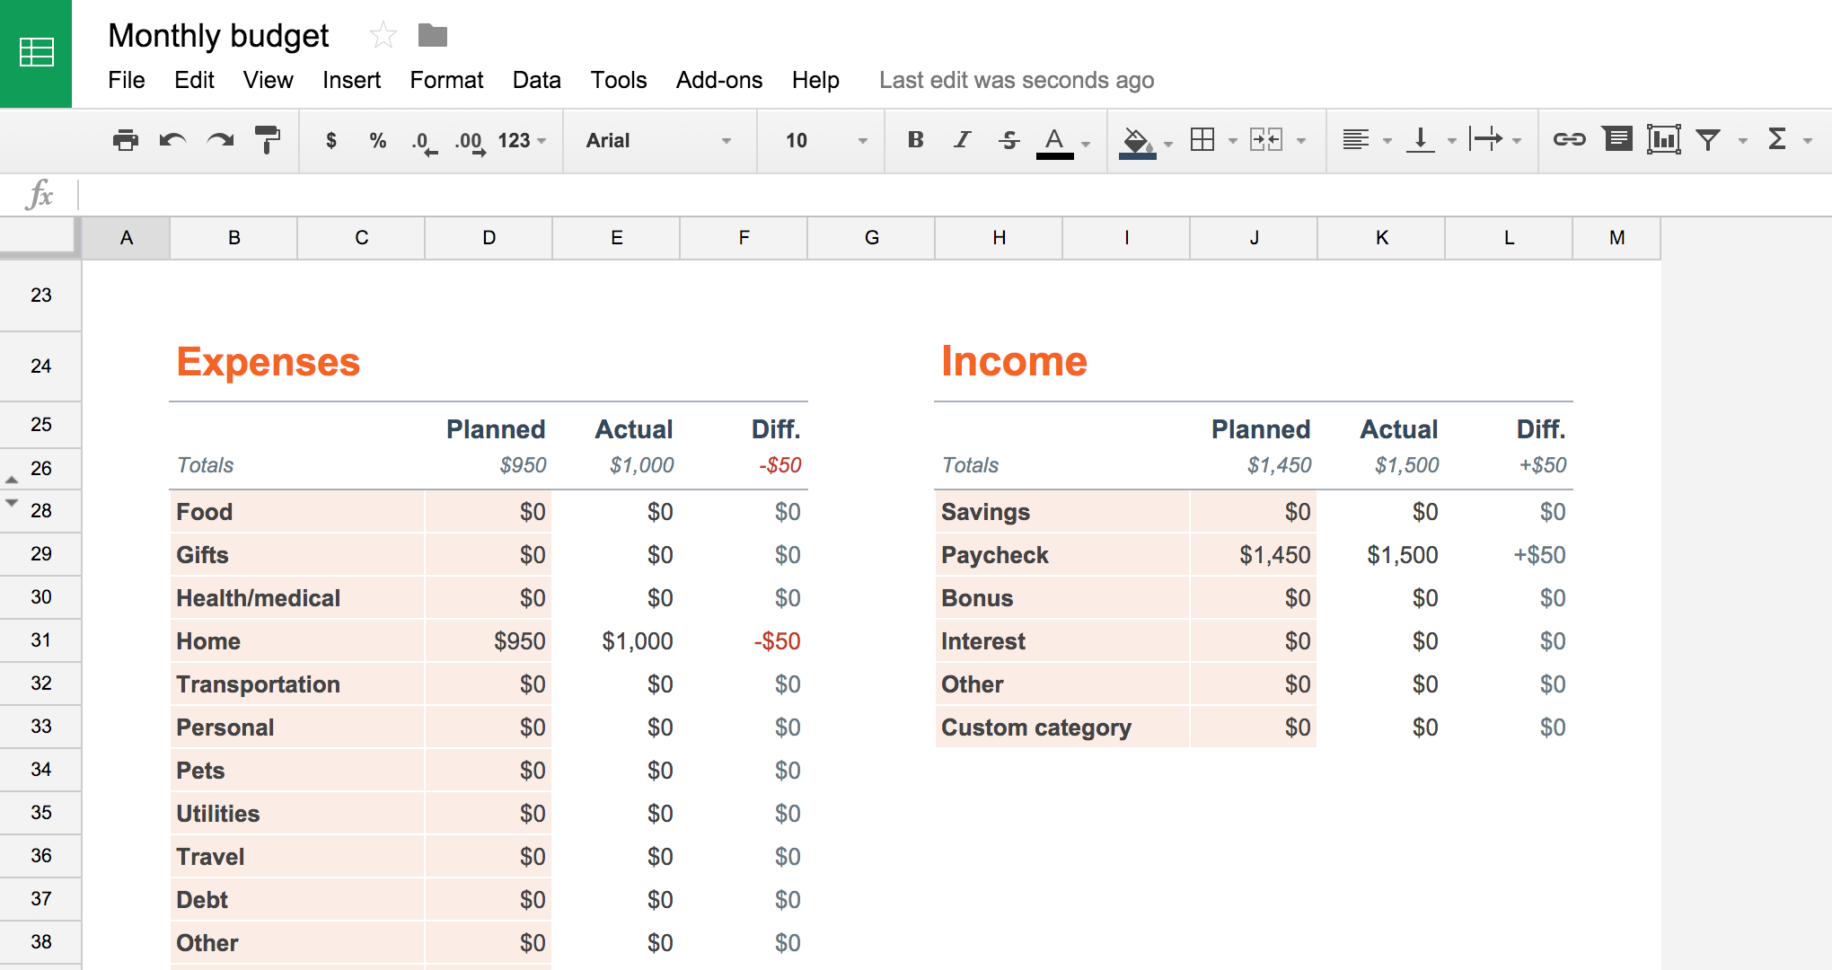 Free Spreadsheet App For Ipad In From Visicalc To Google Sheets: The 12 Best Spreadsheet Apps